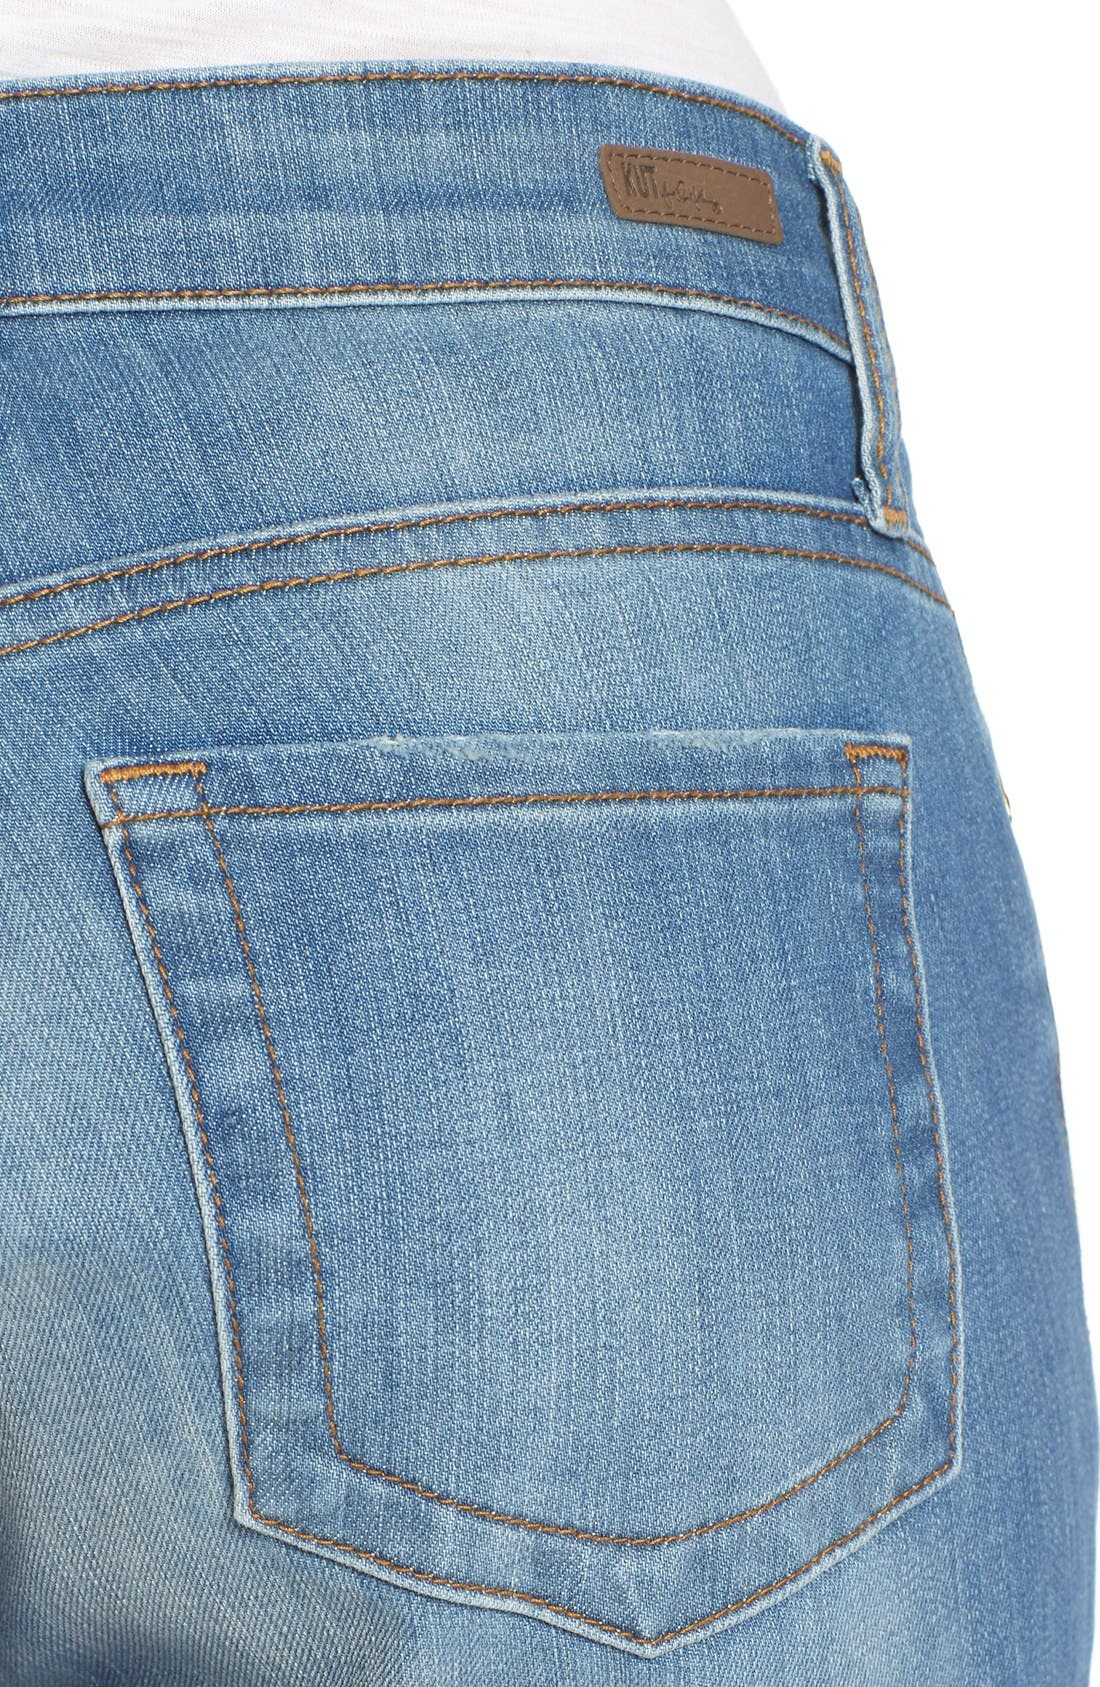 Alternate Image 4  - KUT from the Kloth 'Catherine' Distressed Stretch Boyfriend Jeans (Smile)